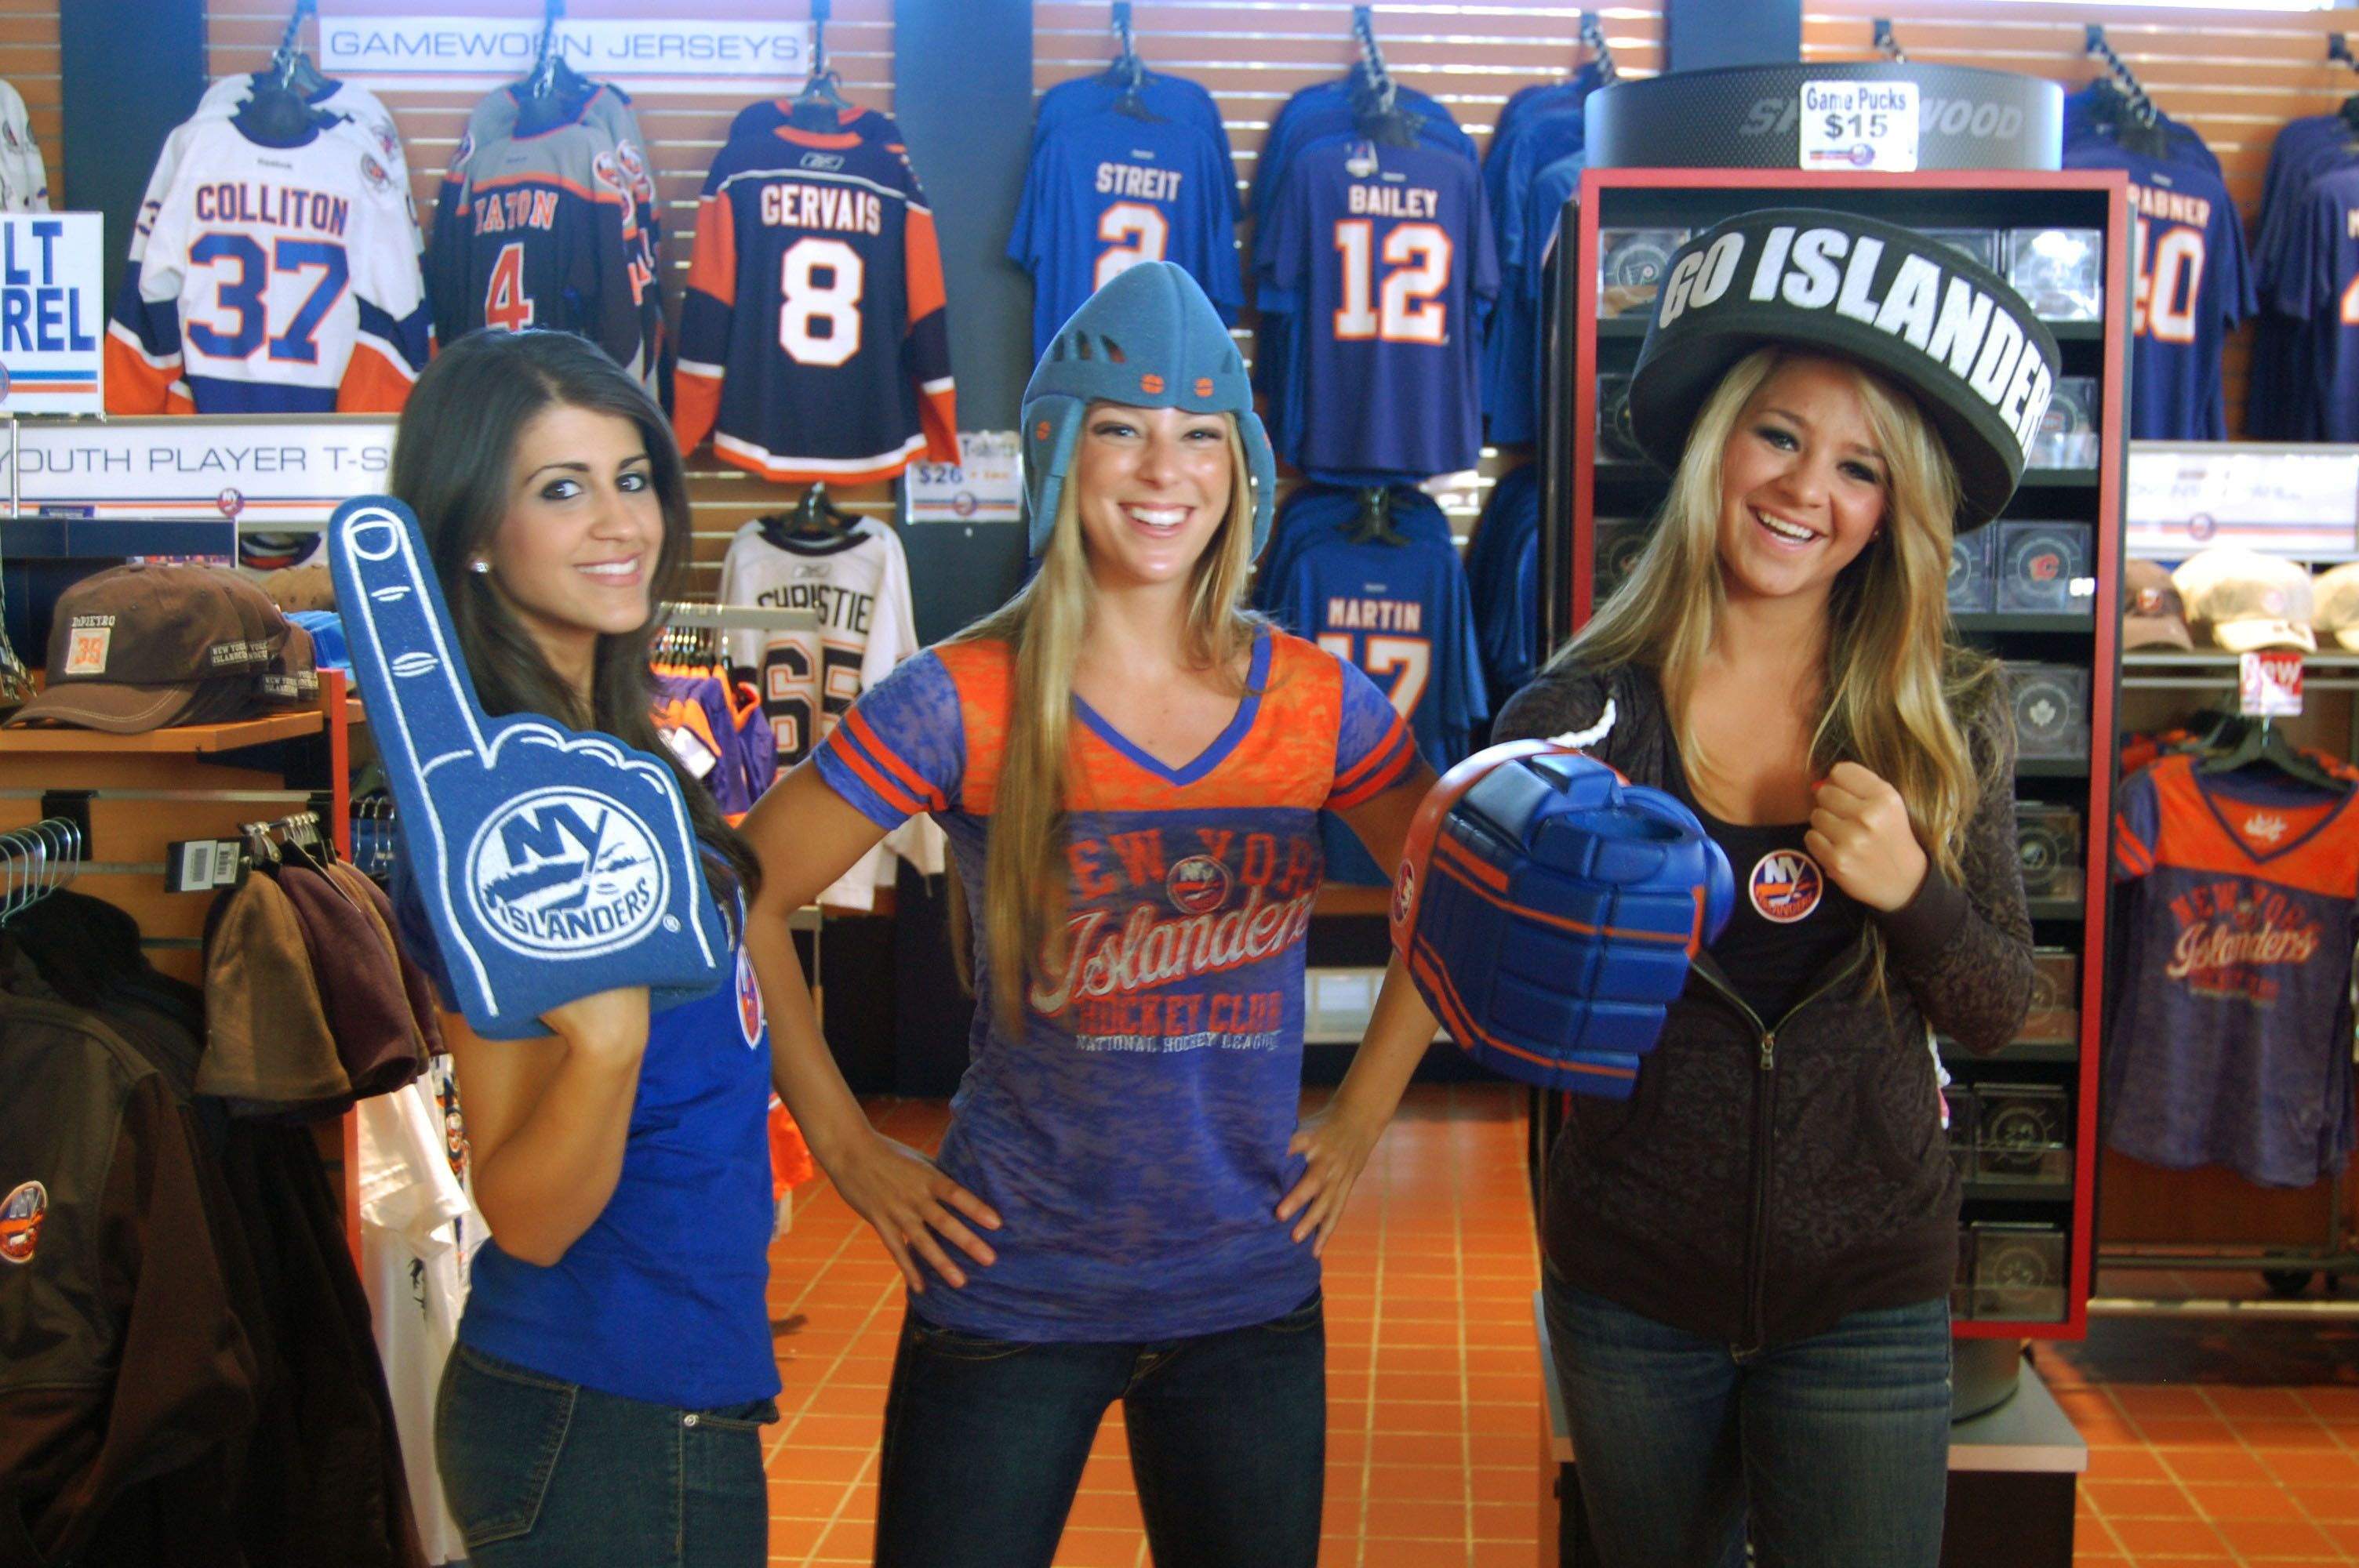 finest selection 60e52 bcb3d All items available at the Islanders Team Store at Nassau ...